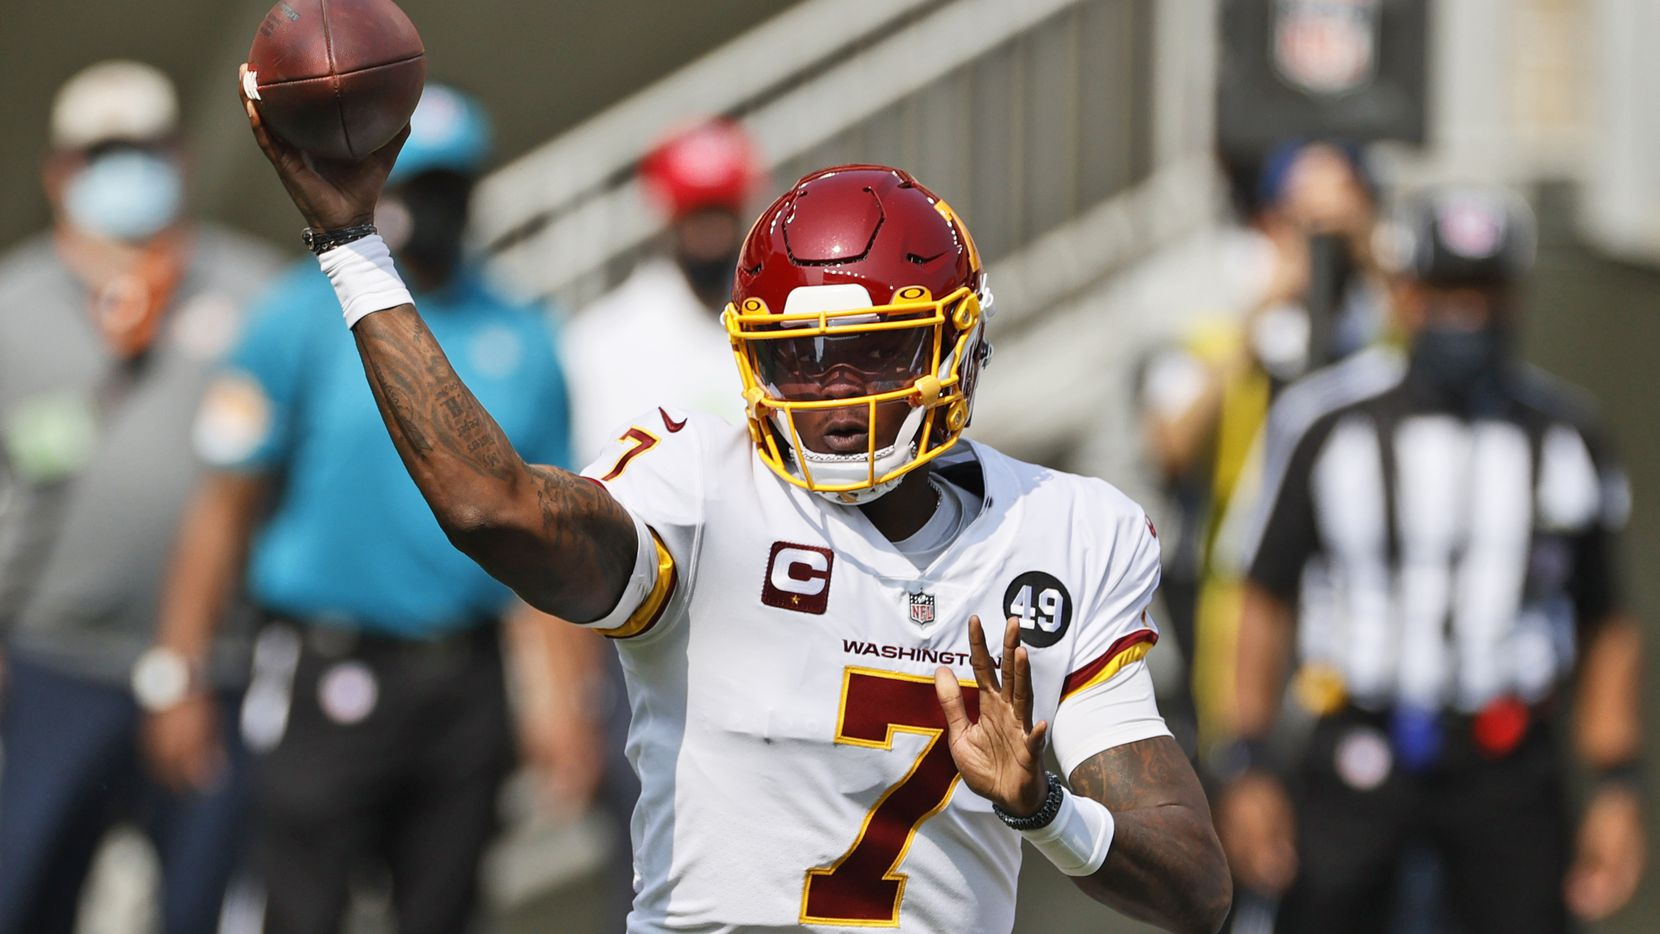 In this Sept. 27, 2020, file photo, Washington Football Team quarterback Dwayne Haskins throws during the first half of an NFL football game against the Cleveland Browns in Cleveland.